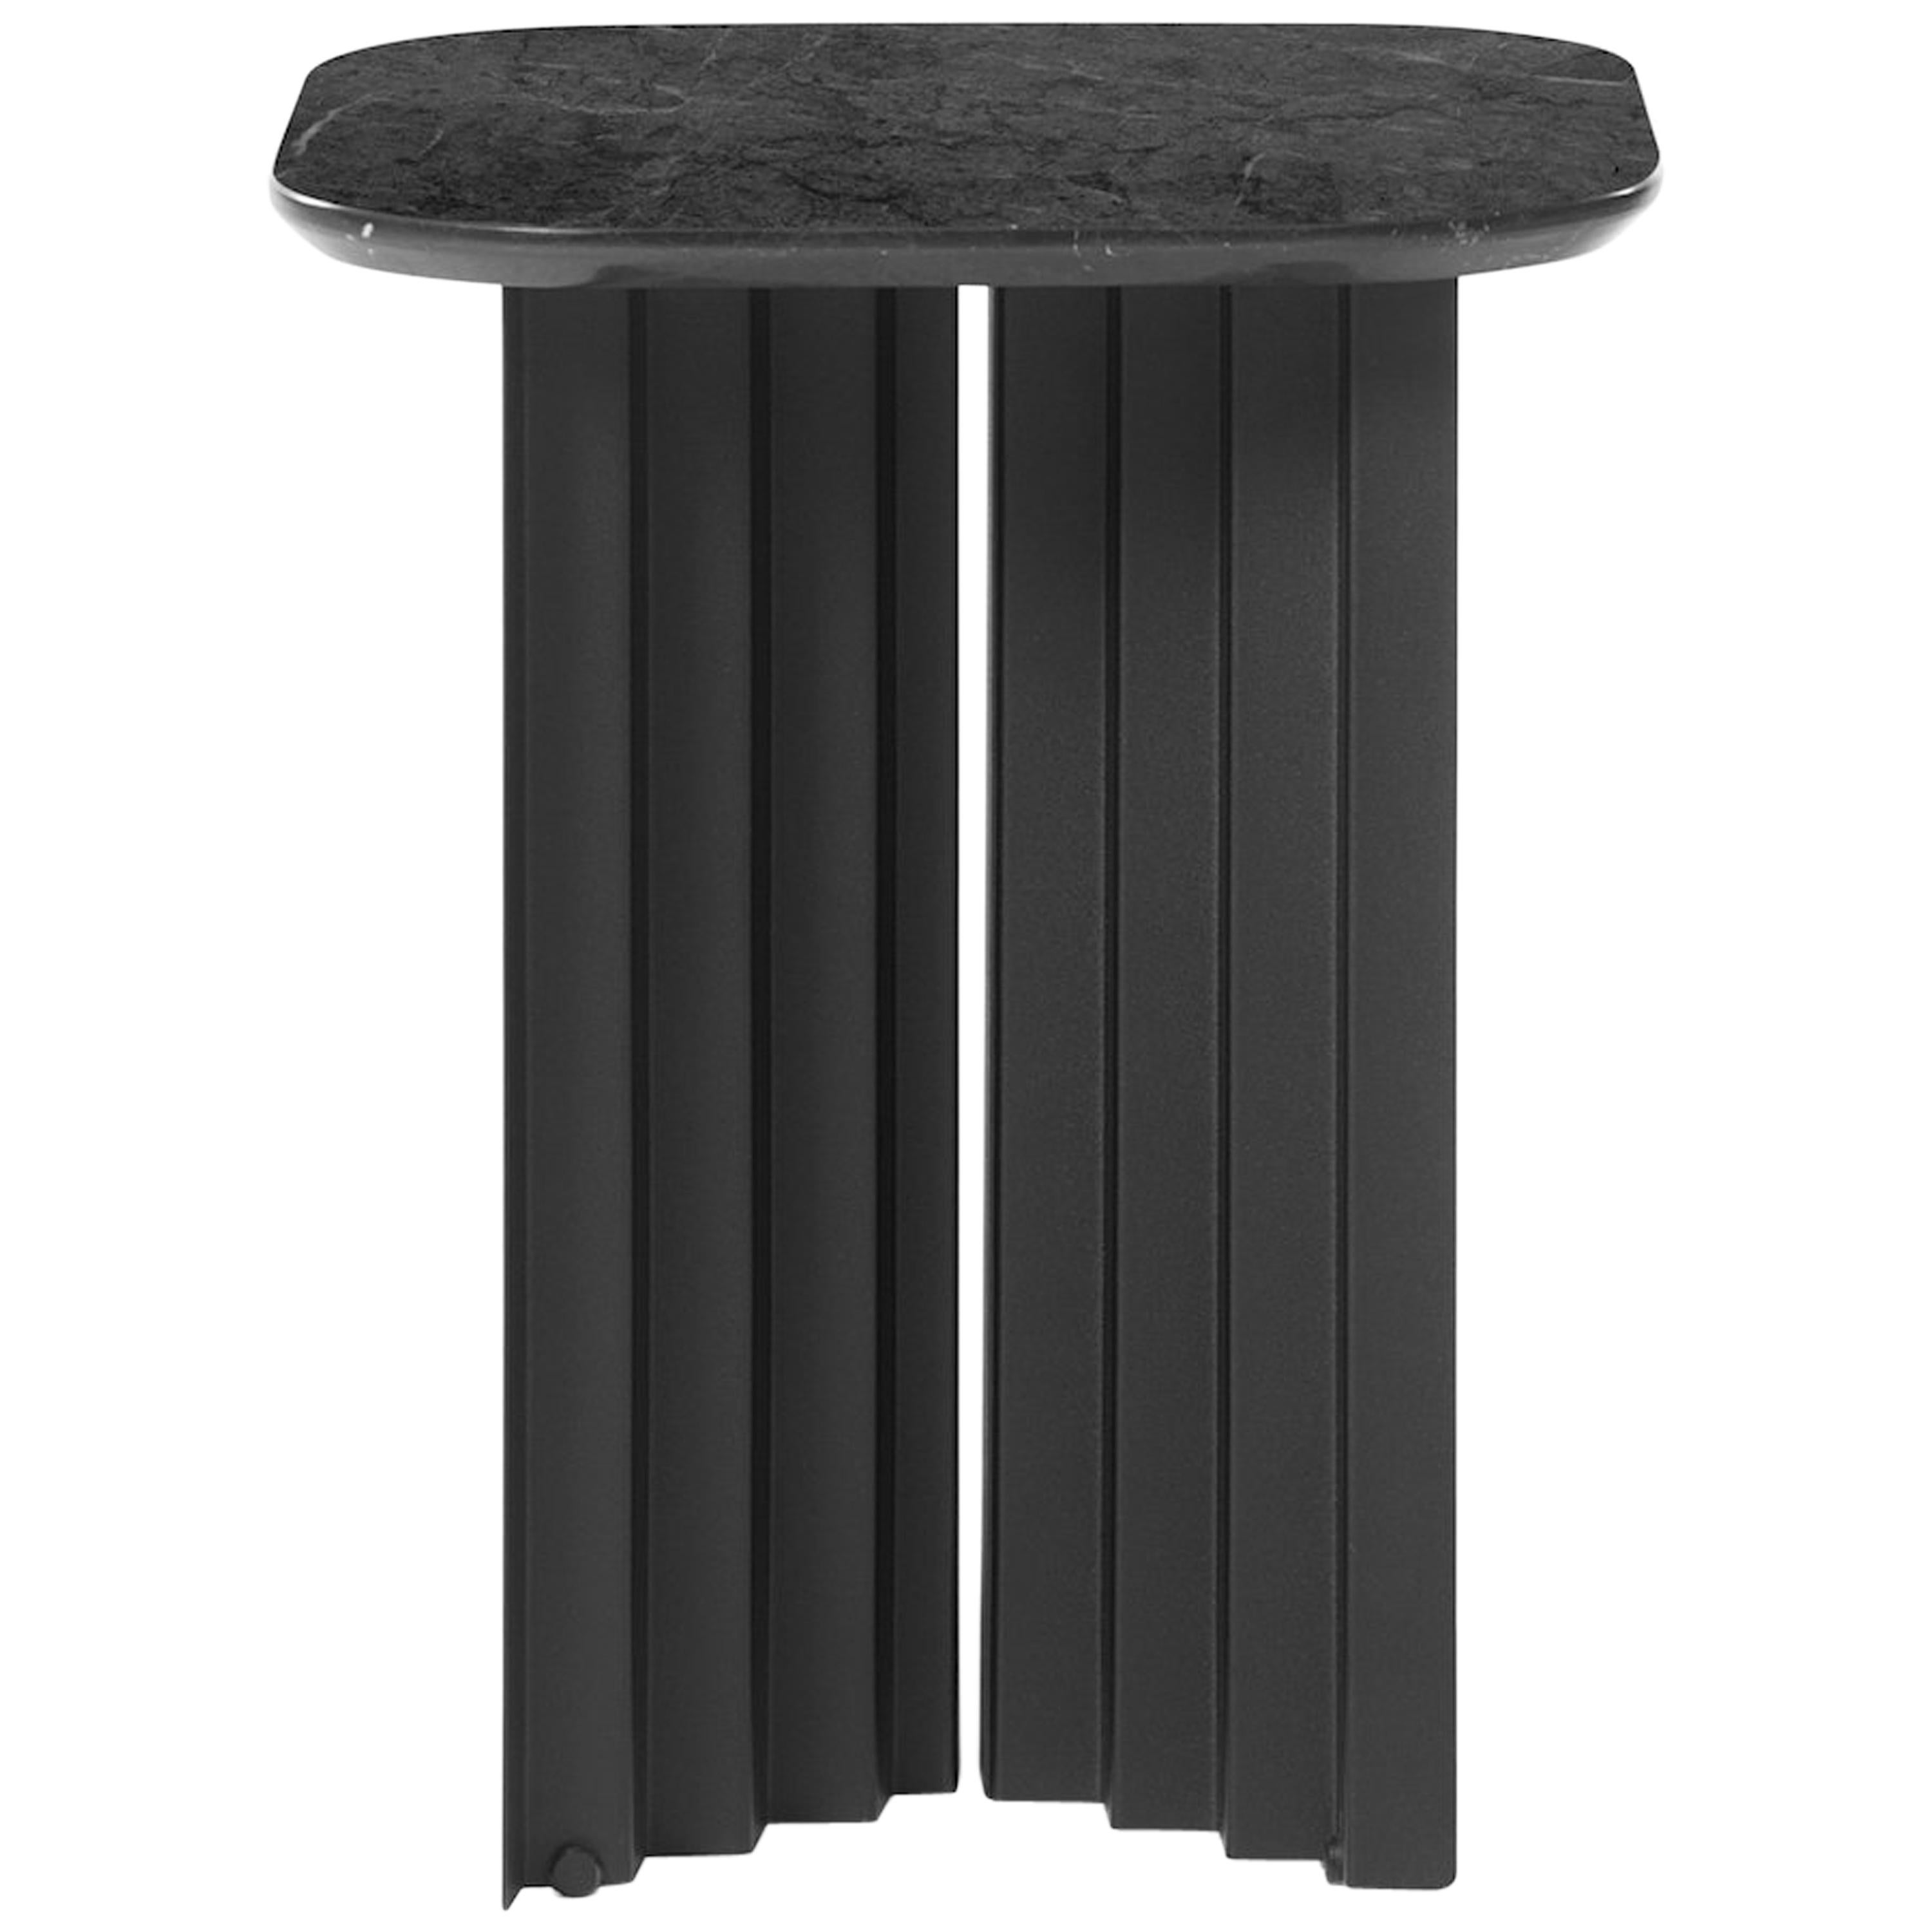 RS Barcelona Plec Small Table in Black Marble by A.P.O.